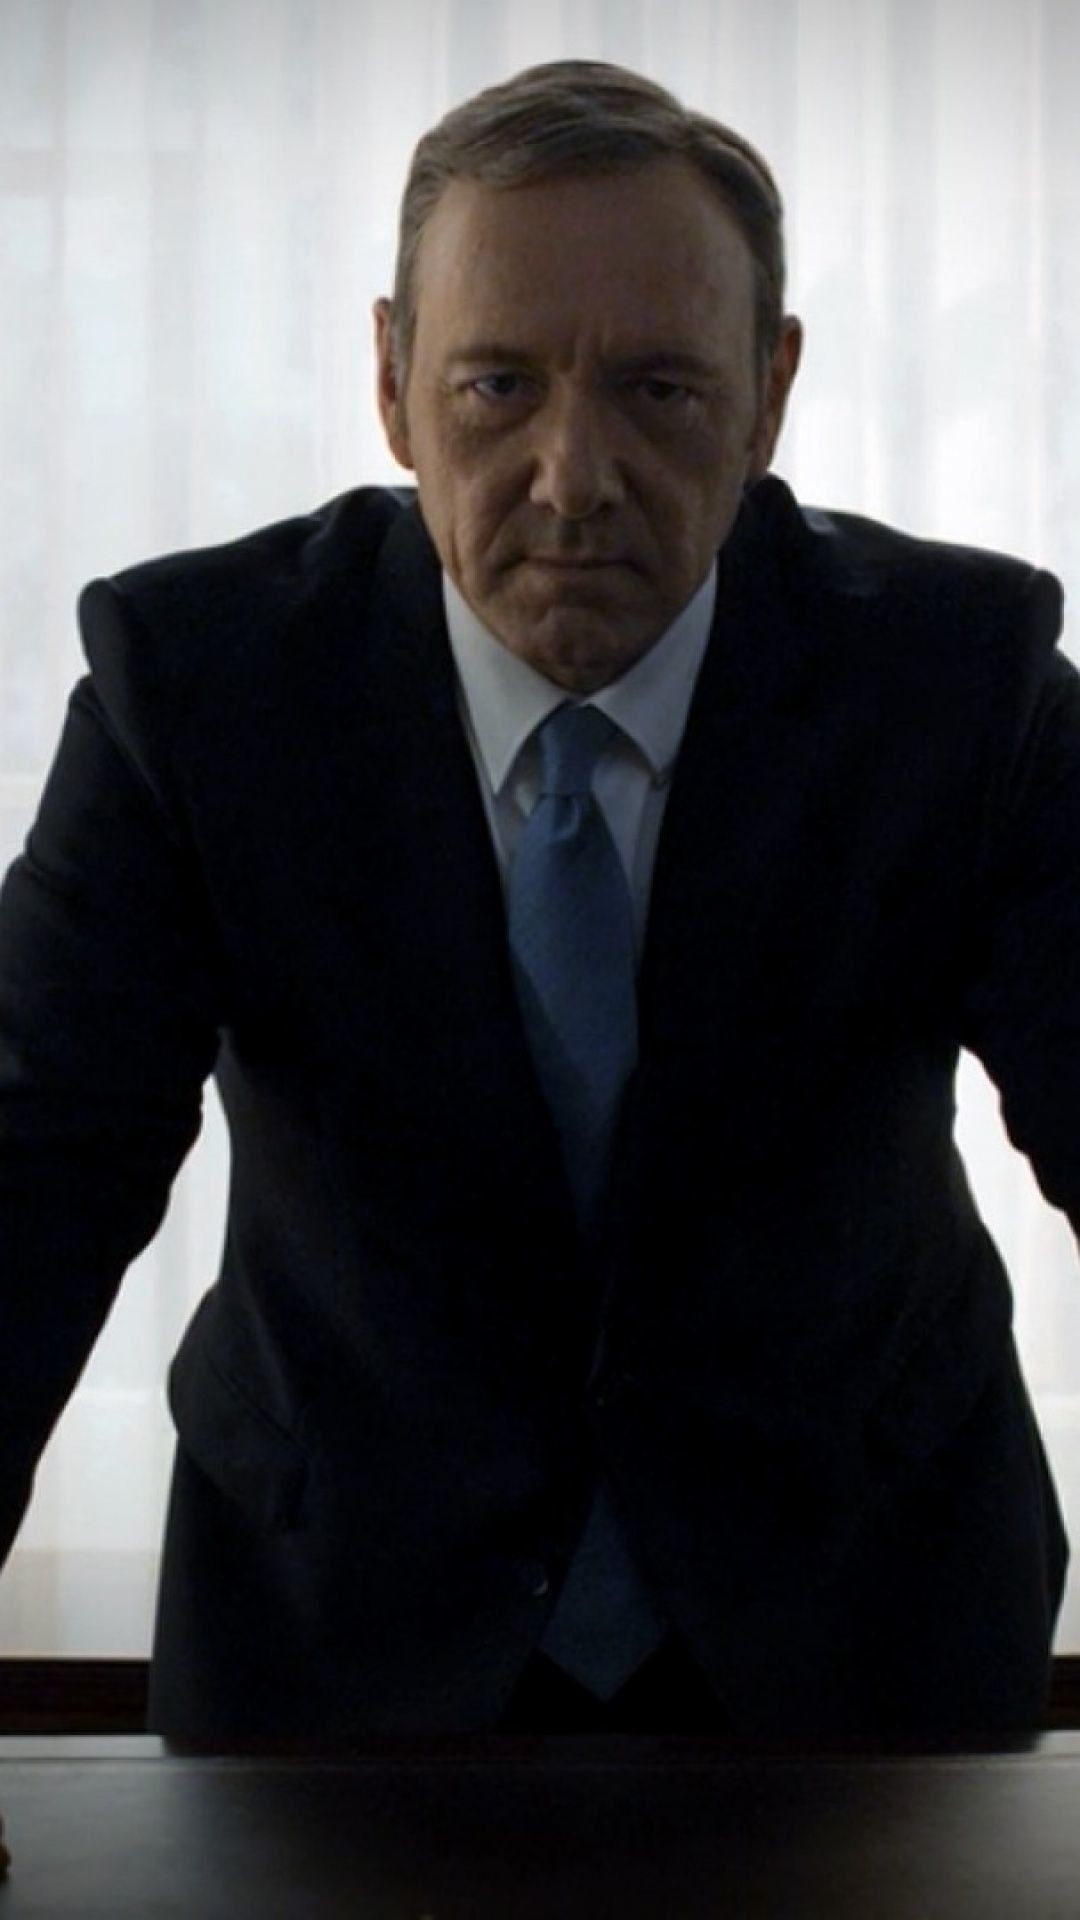 House Of Cards Kevin Spacey Wallpaper Frank Underwood 415430